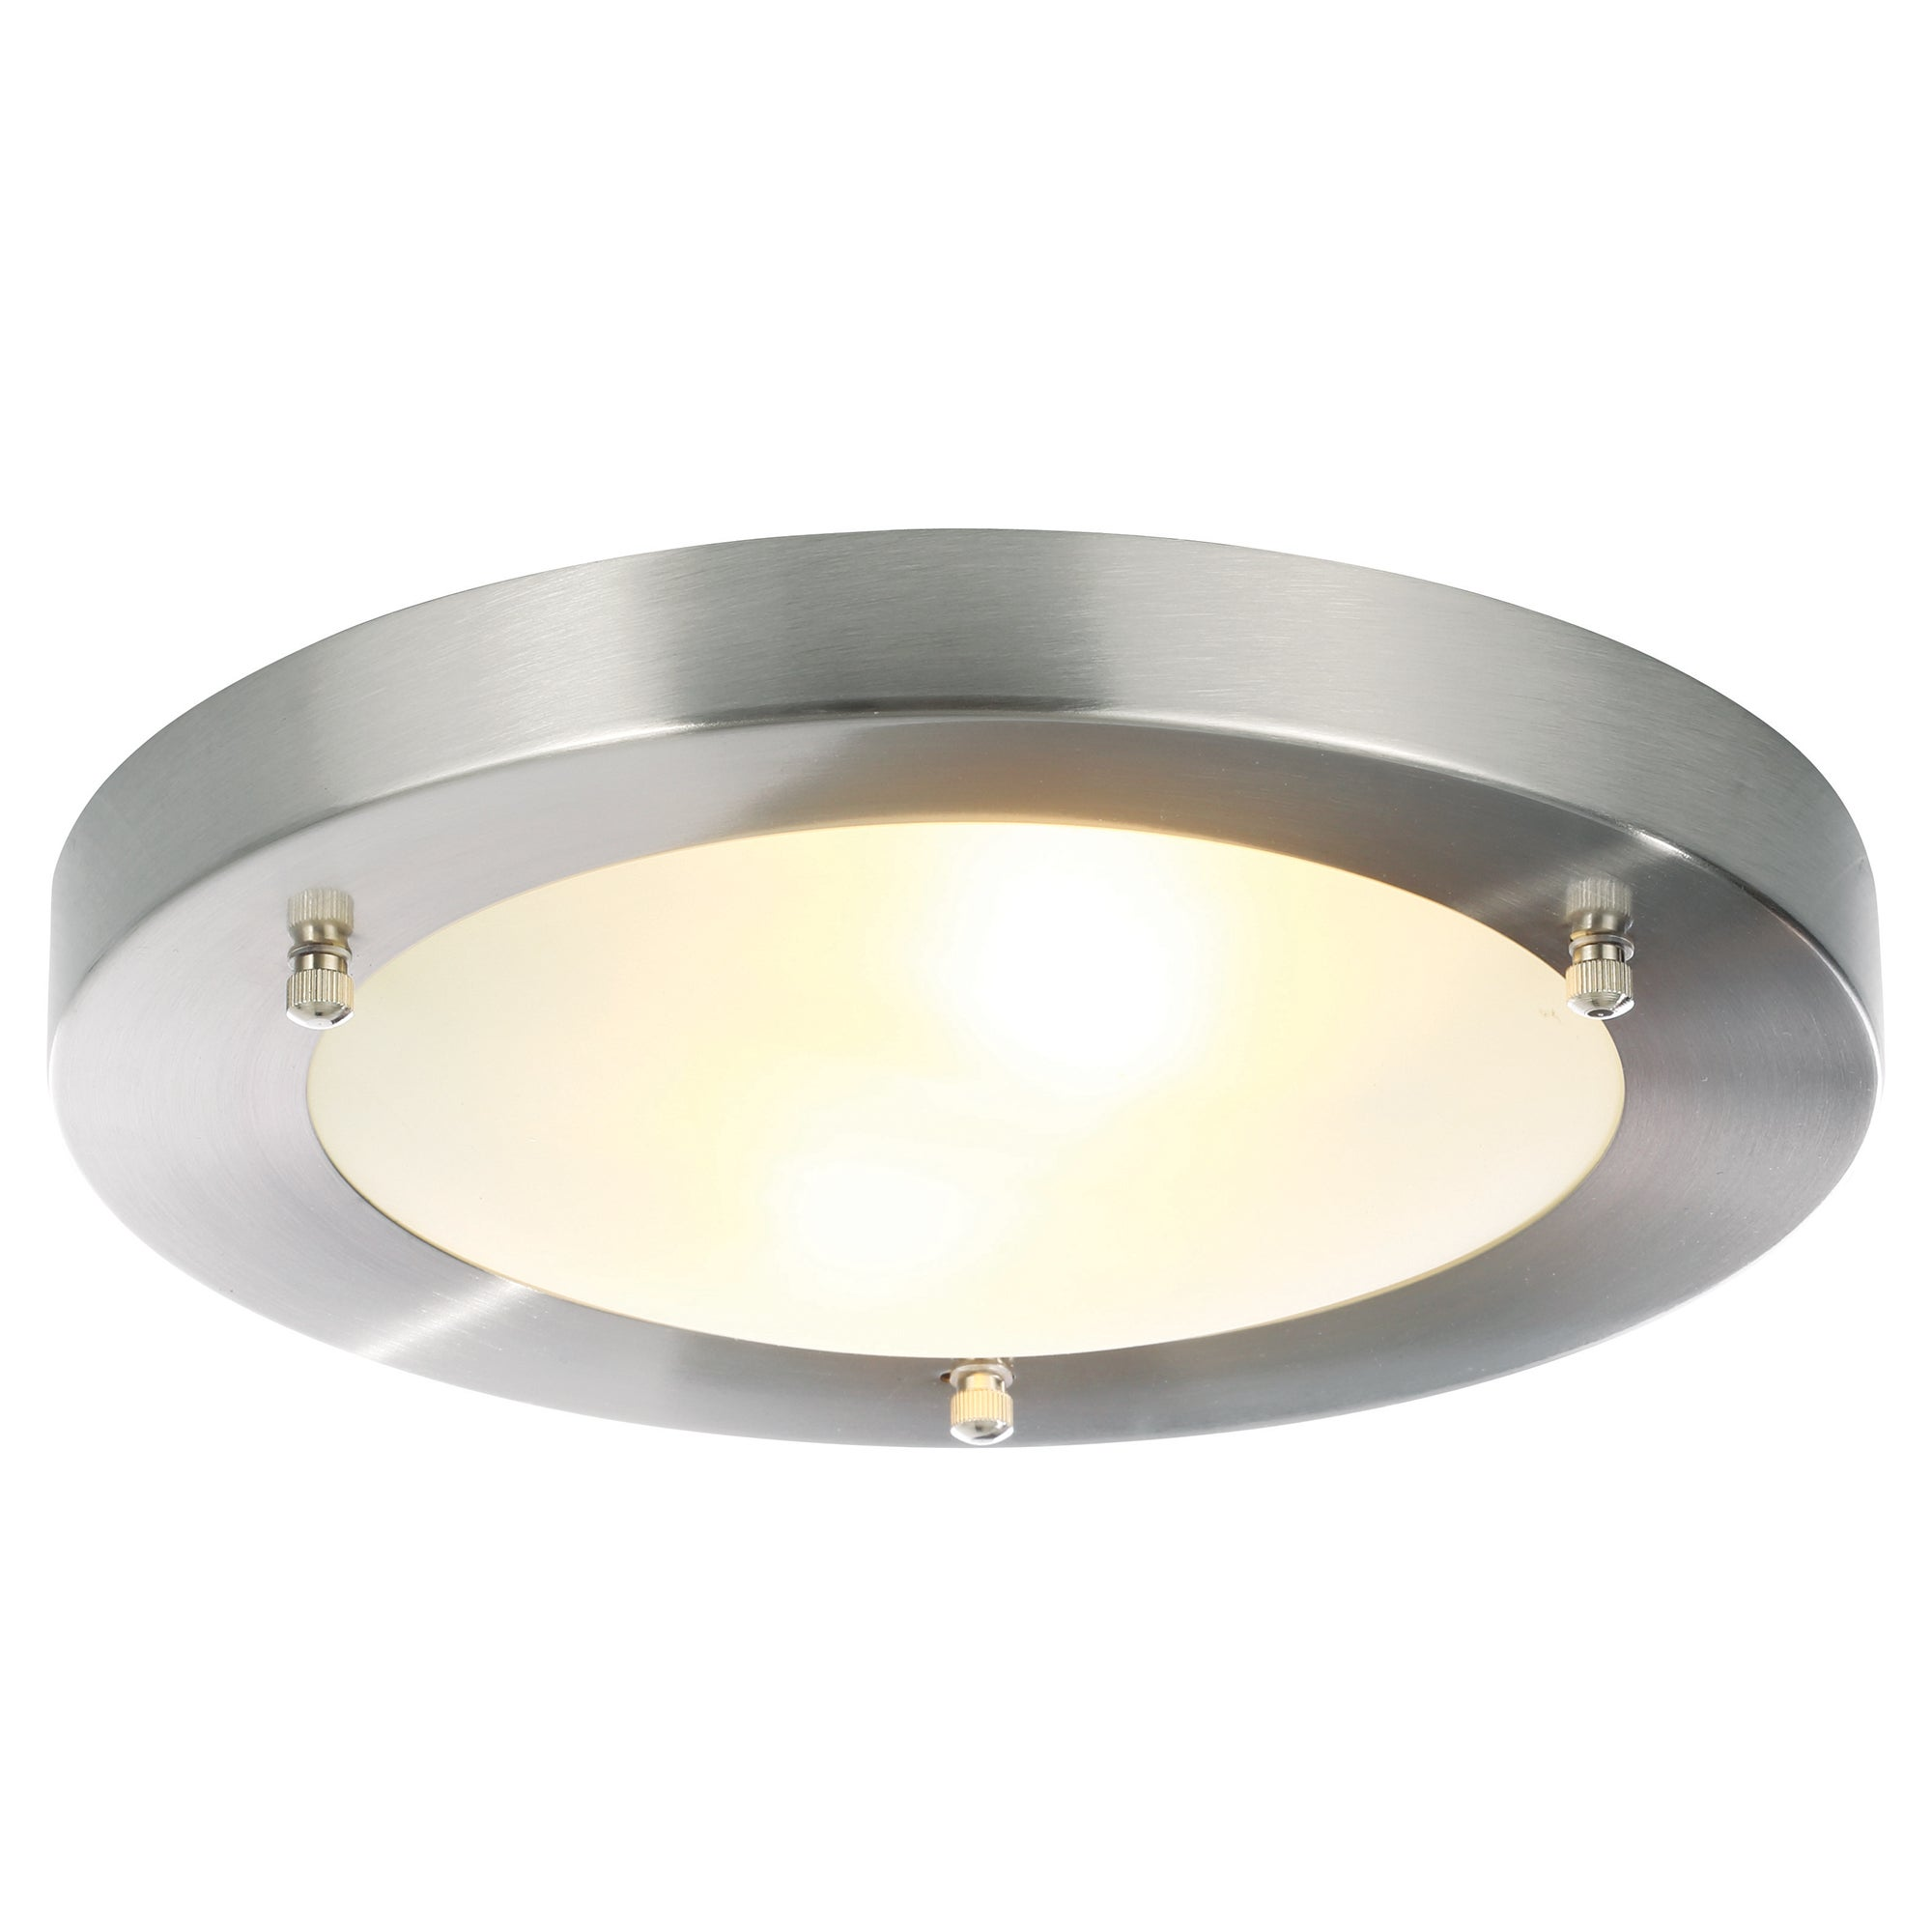 Image of Canis Large Flush Ceiling Fitting Satin Nickel